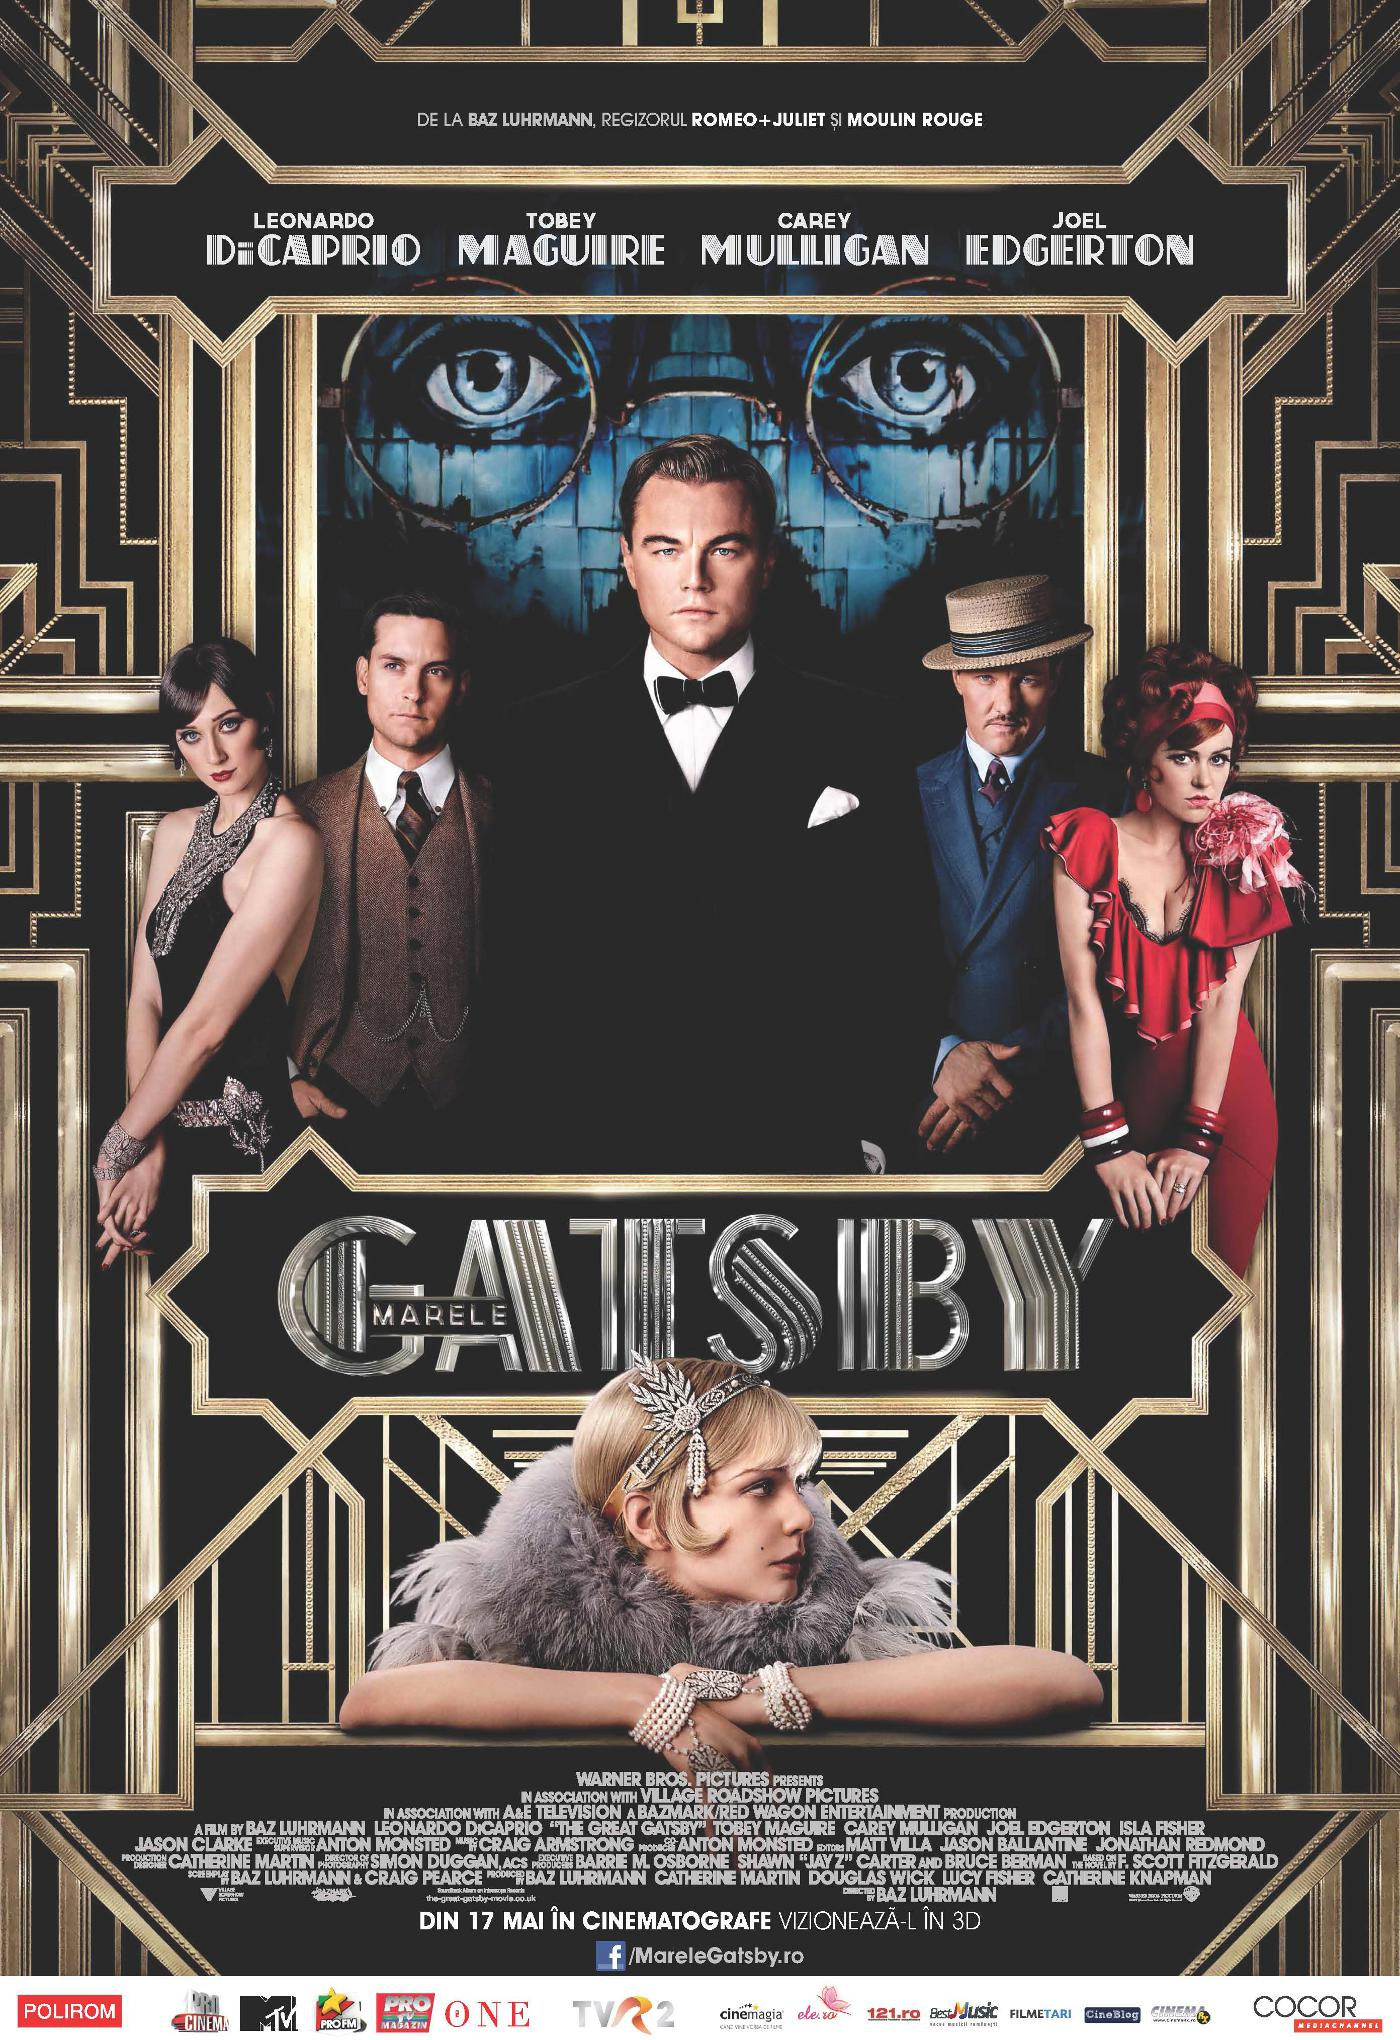 The Great Gatsby - Marele Gatsby (2013) online subtitrat